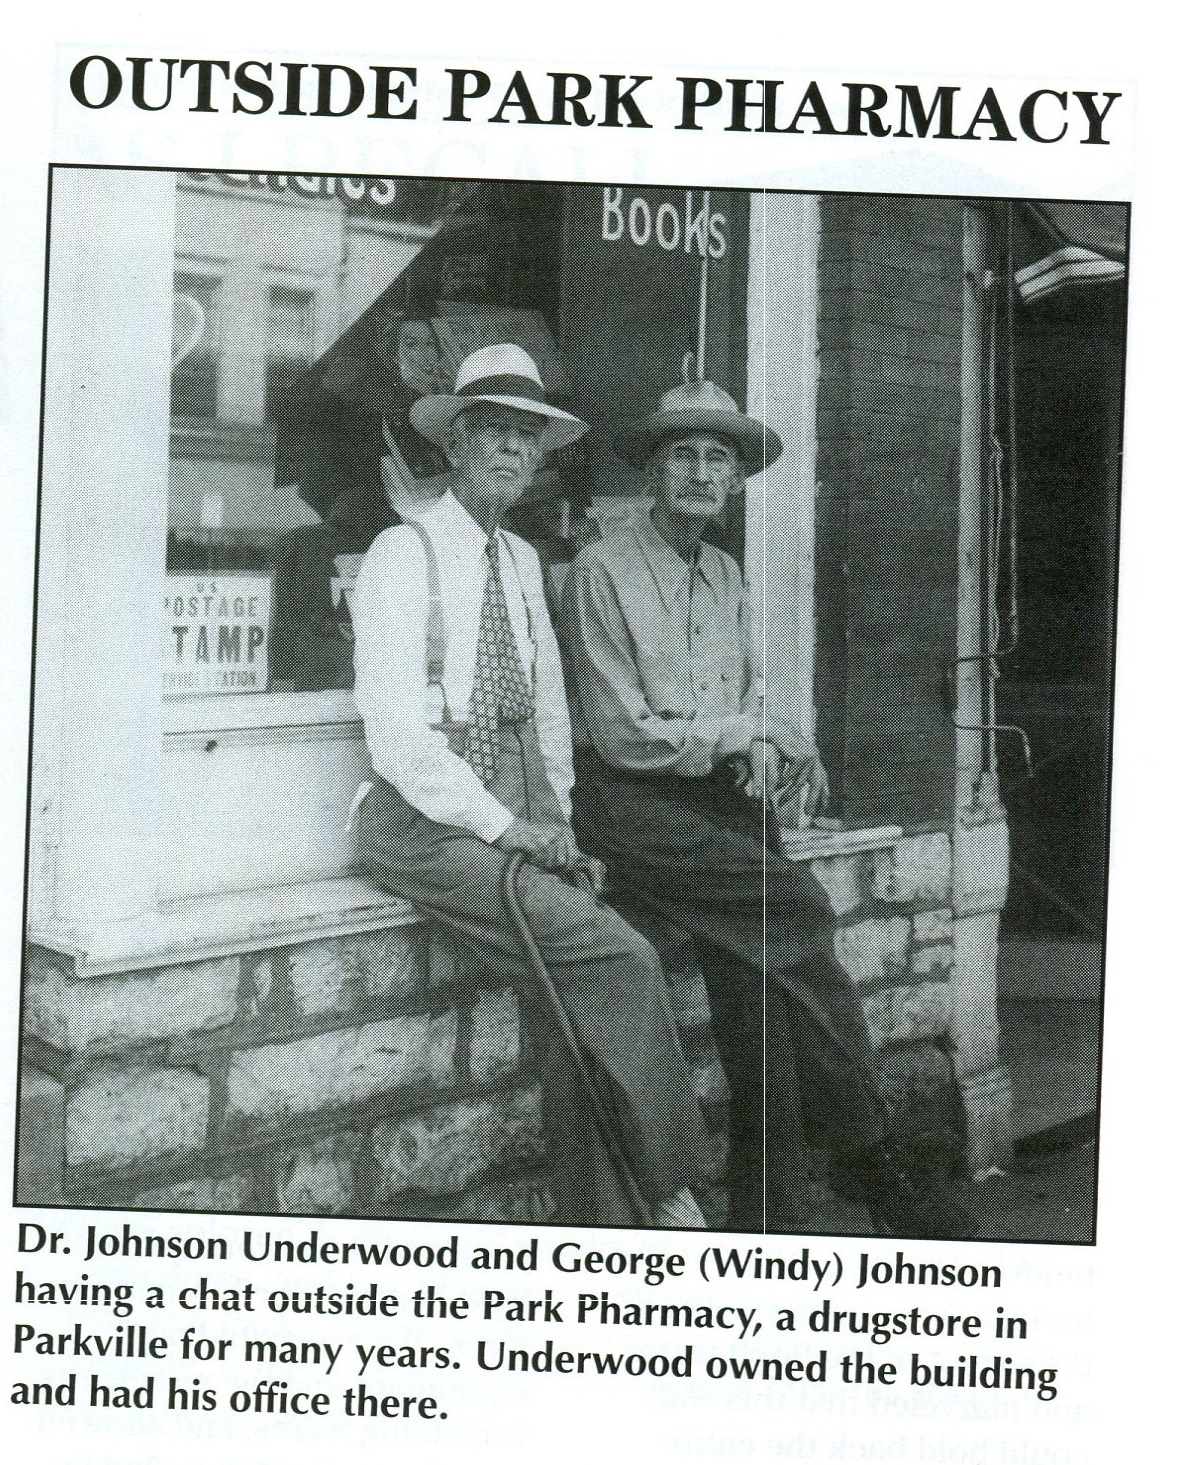 Dr. Johnson Underwood and George (Windy) Johnson having a chat outside the Park Pharmacy, a drugstore in Parkville. Underwood owned the building and had his office here.